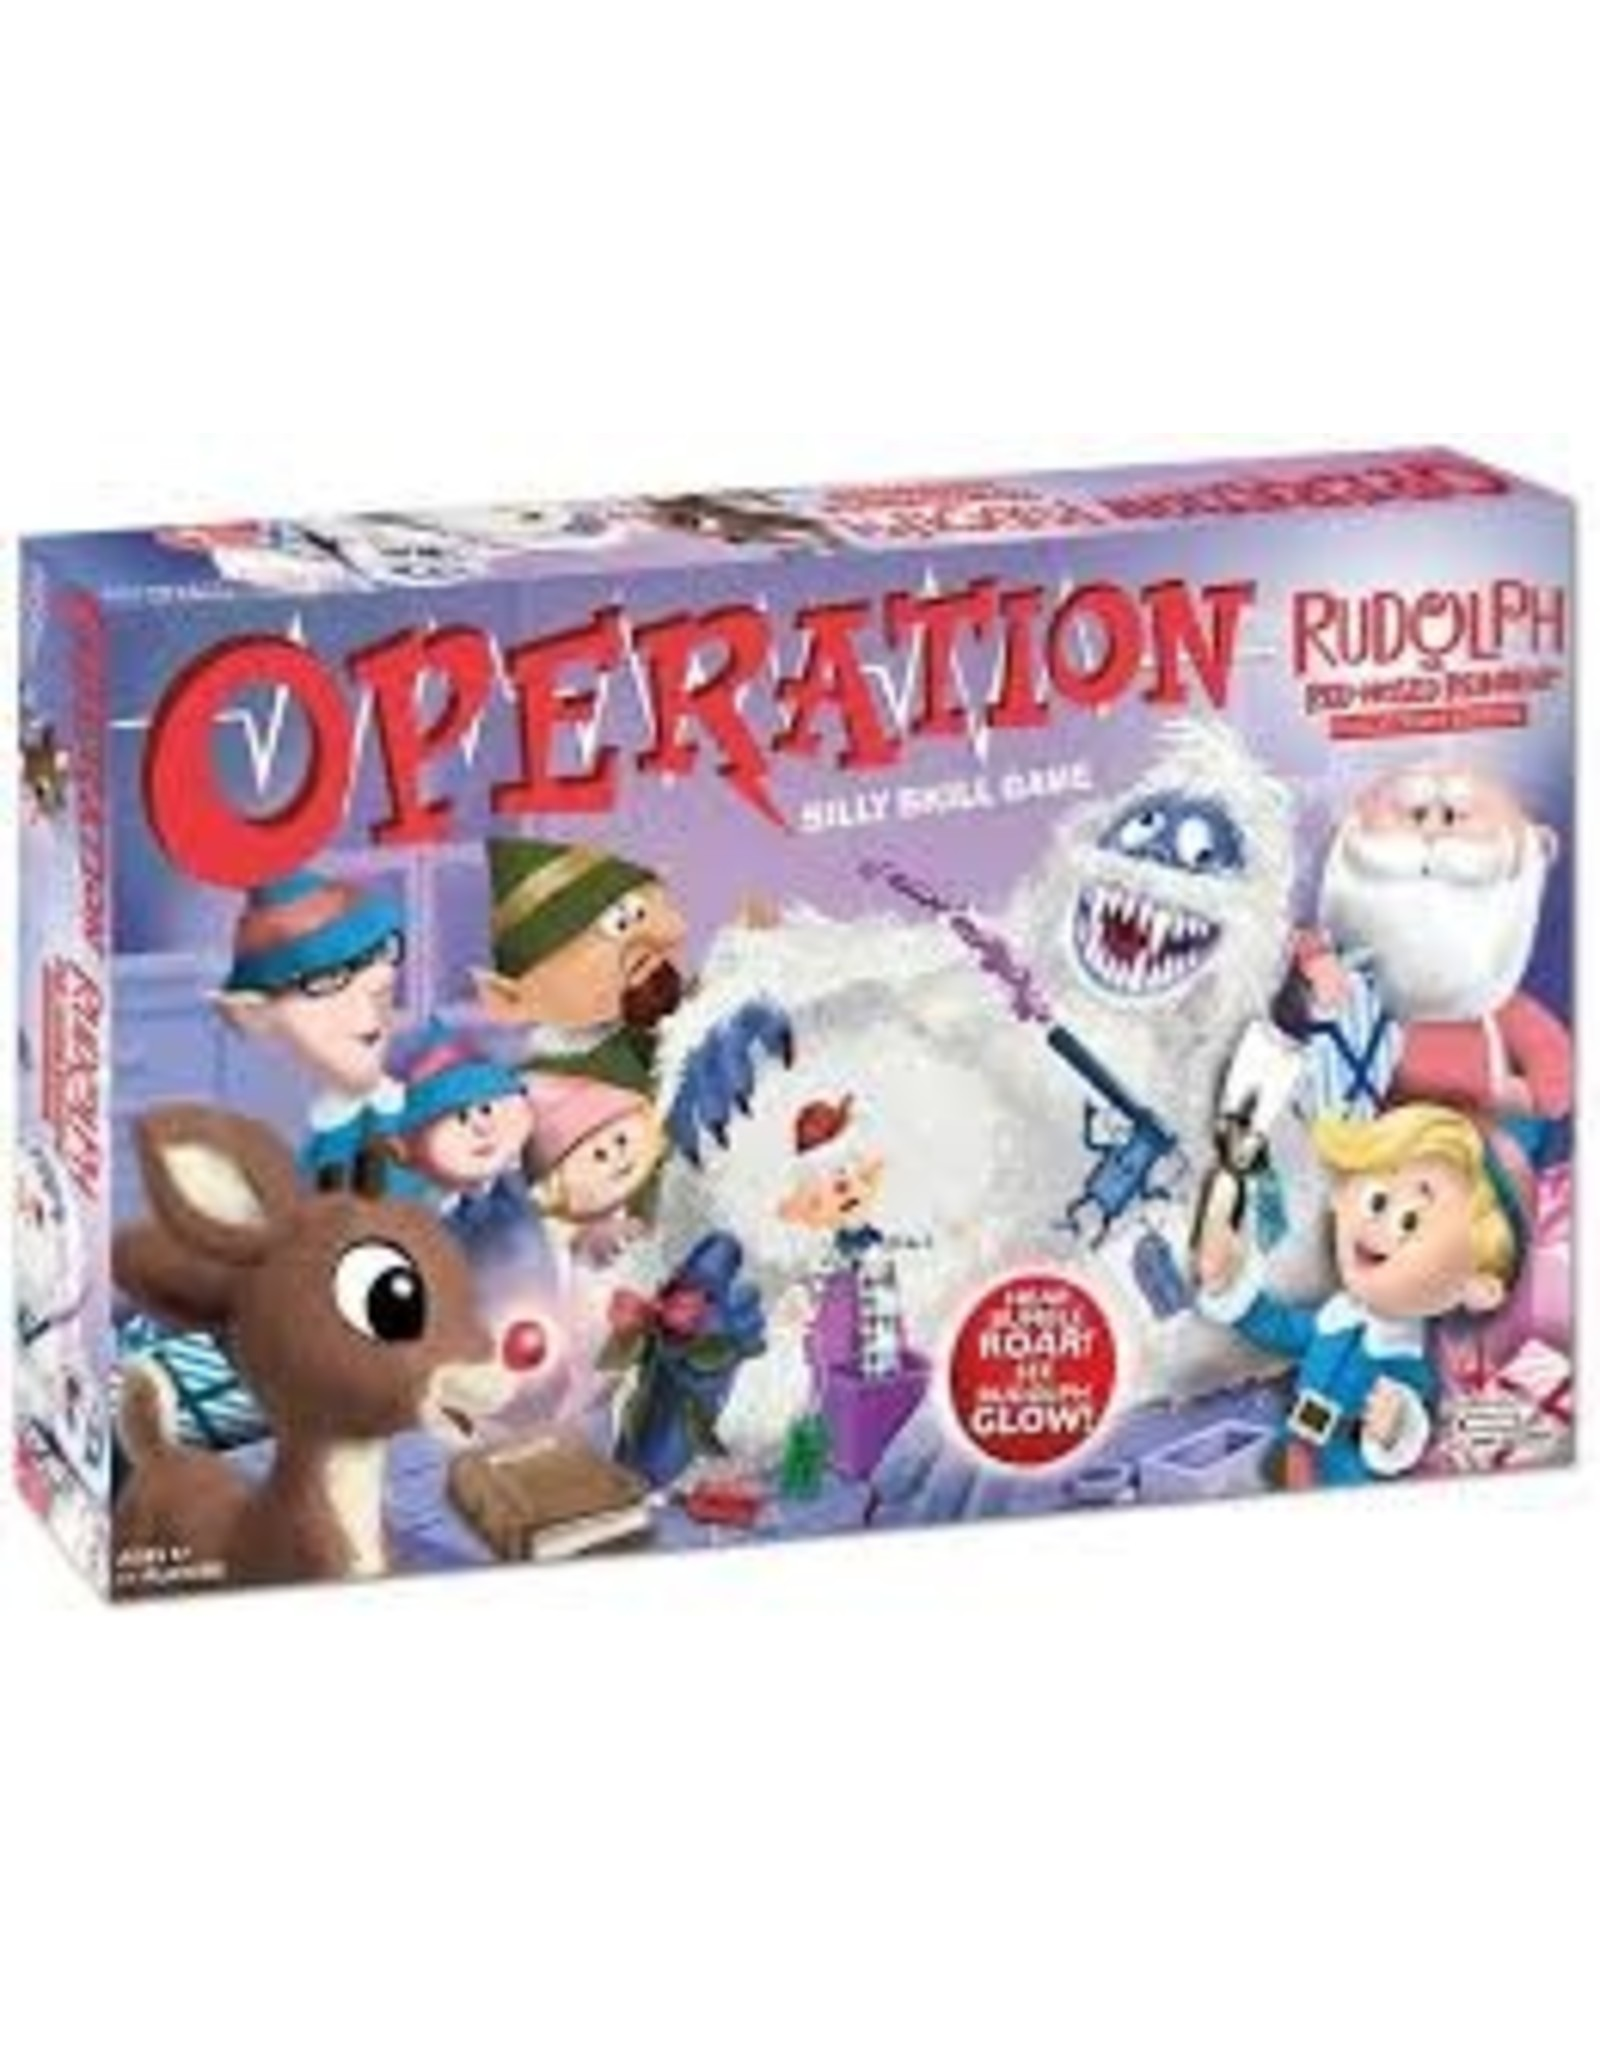 The OP Operation Rudolph